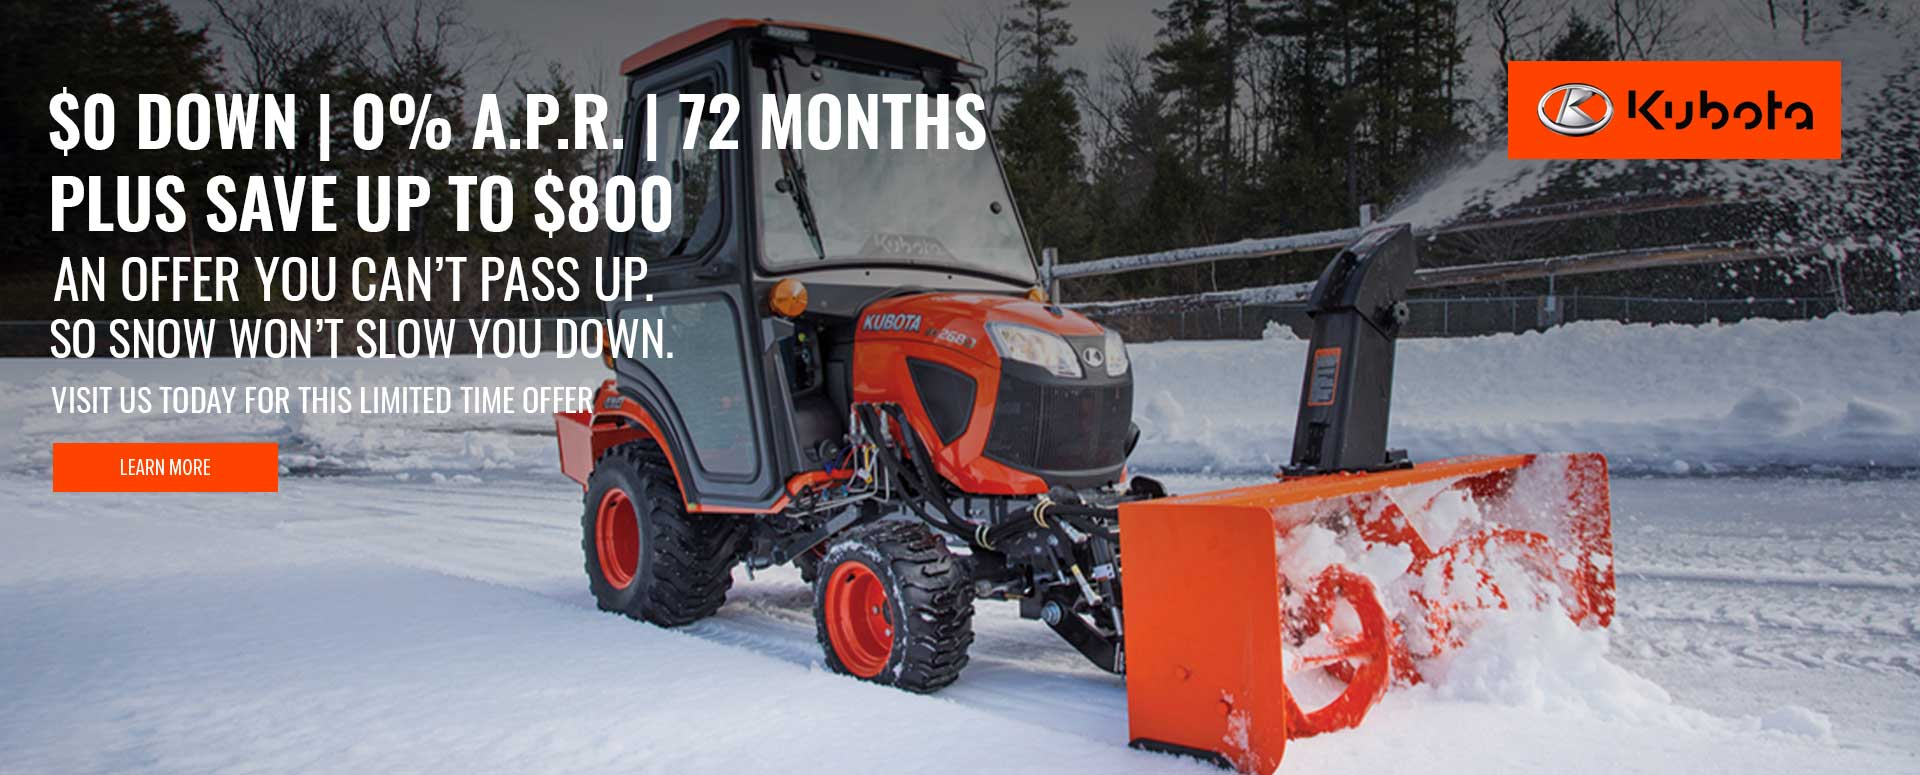 Kubota Snow Finance Specials 2021